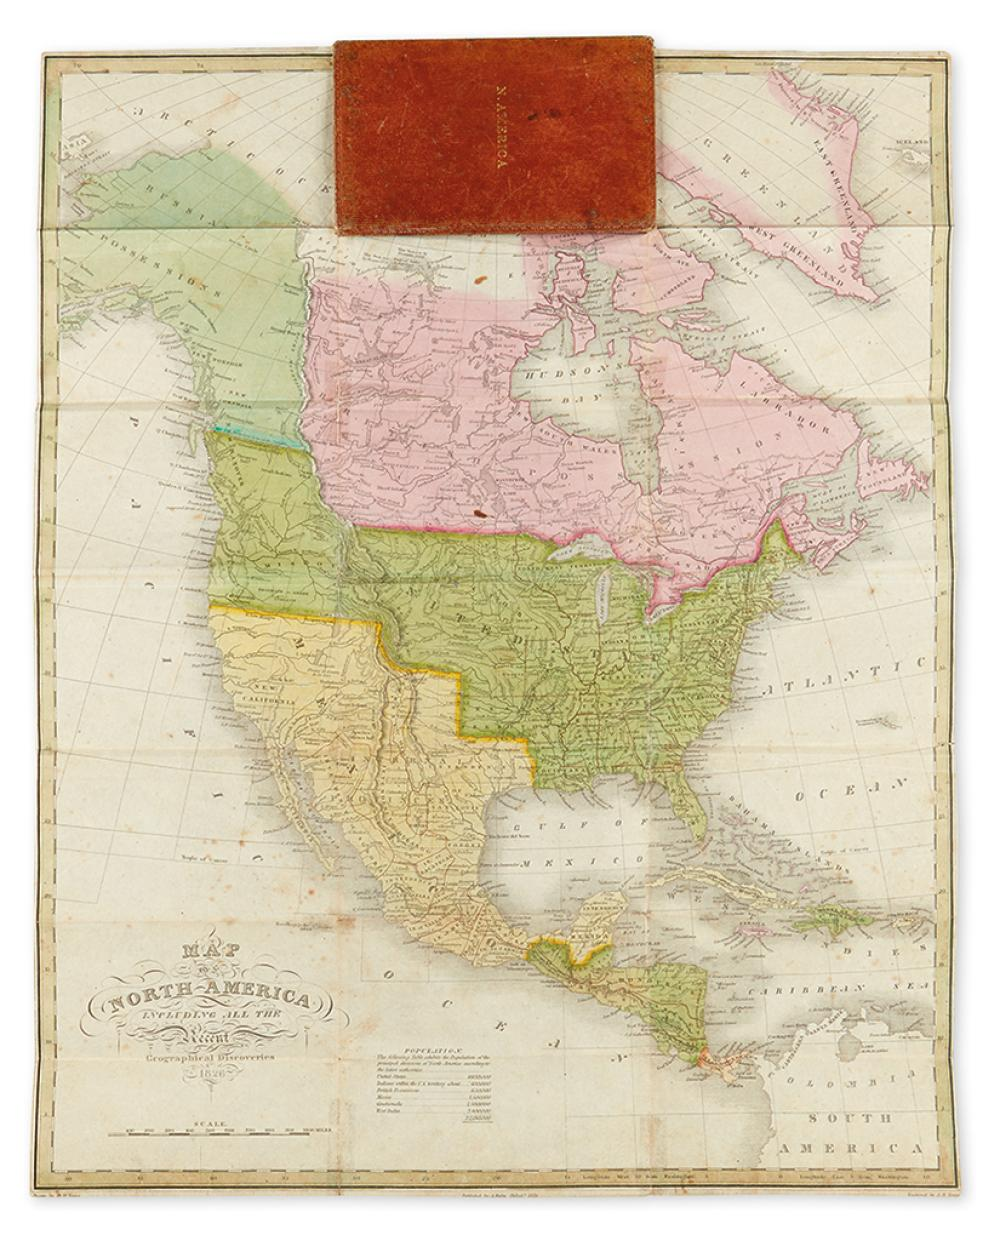 FINLEY, ANTHONY. Map of North America Including all the Recent Geographical Discoveries.